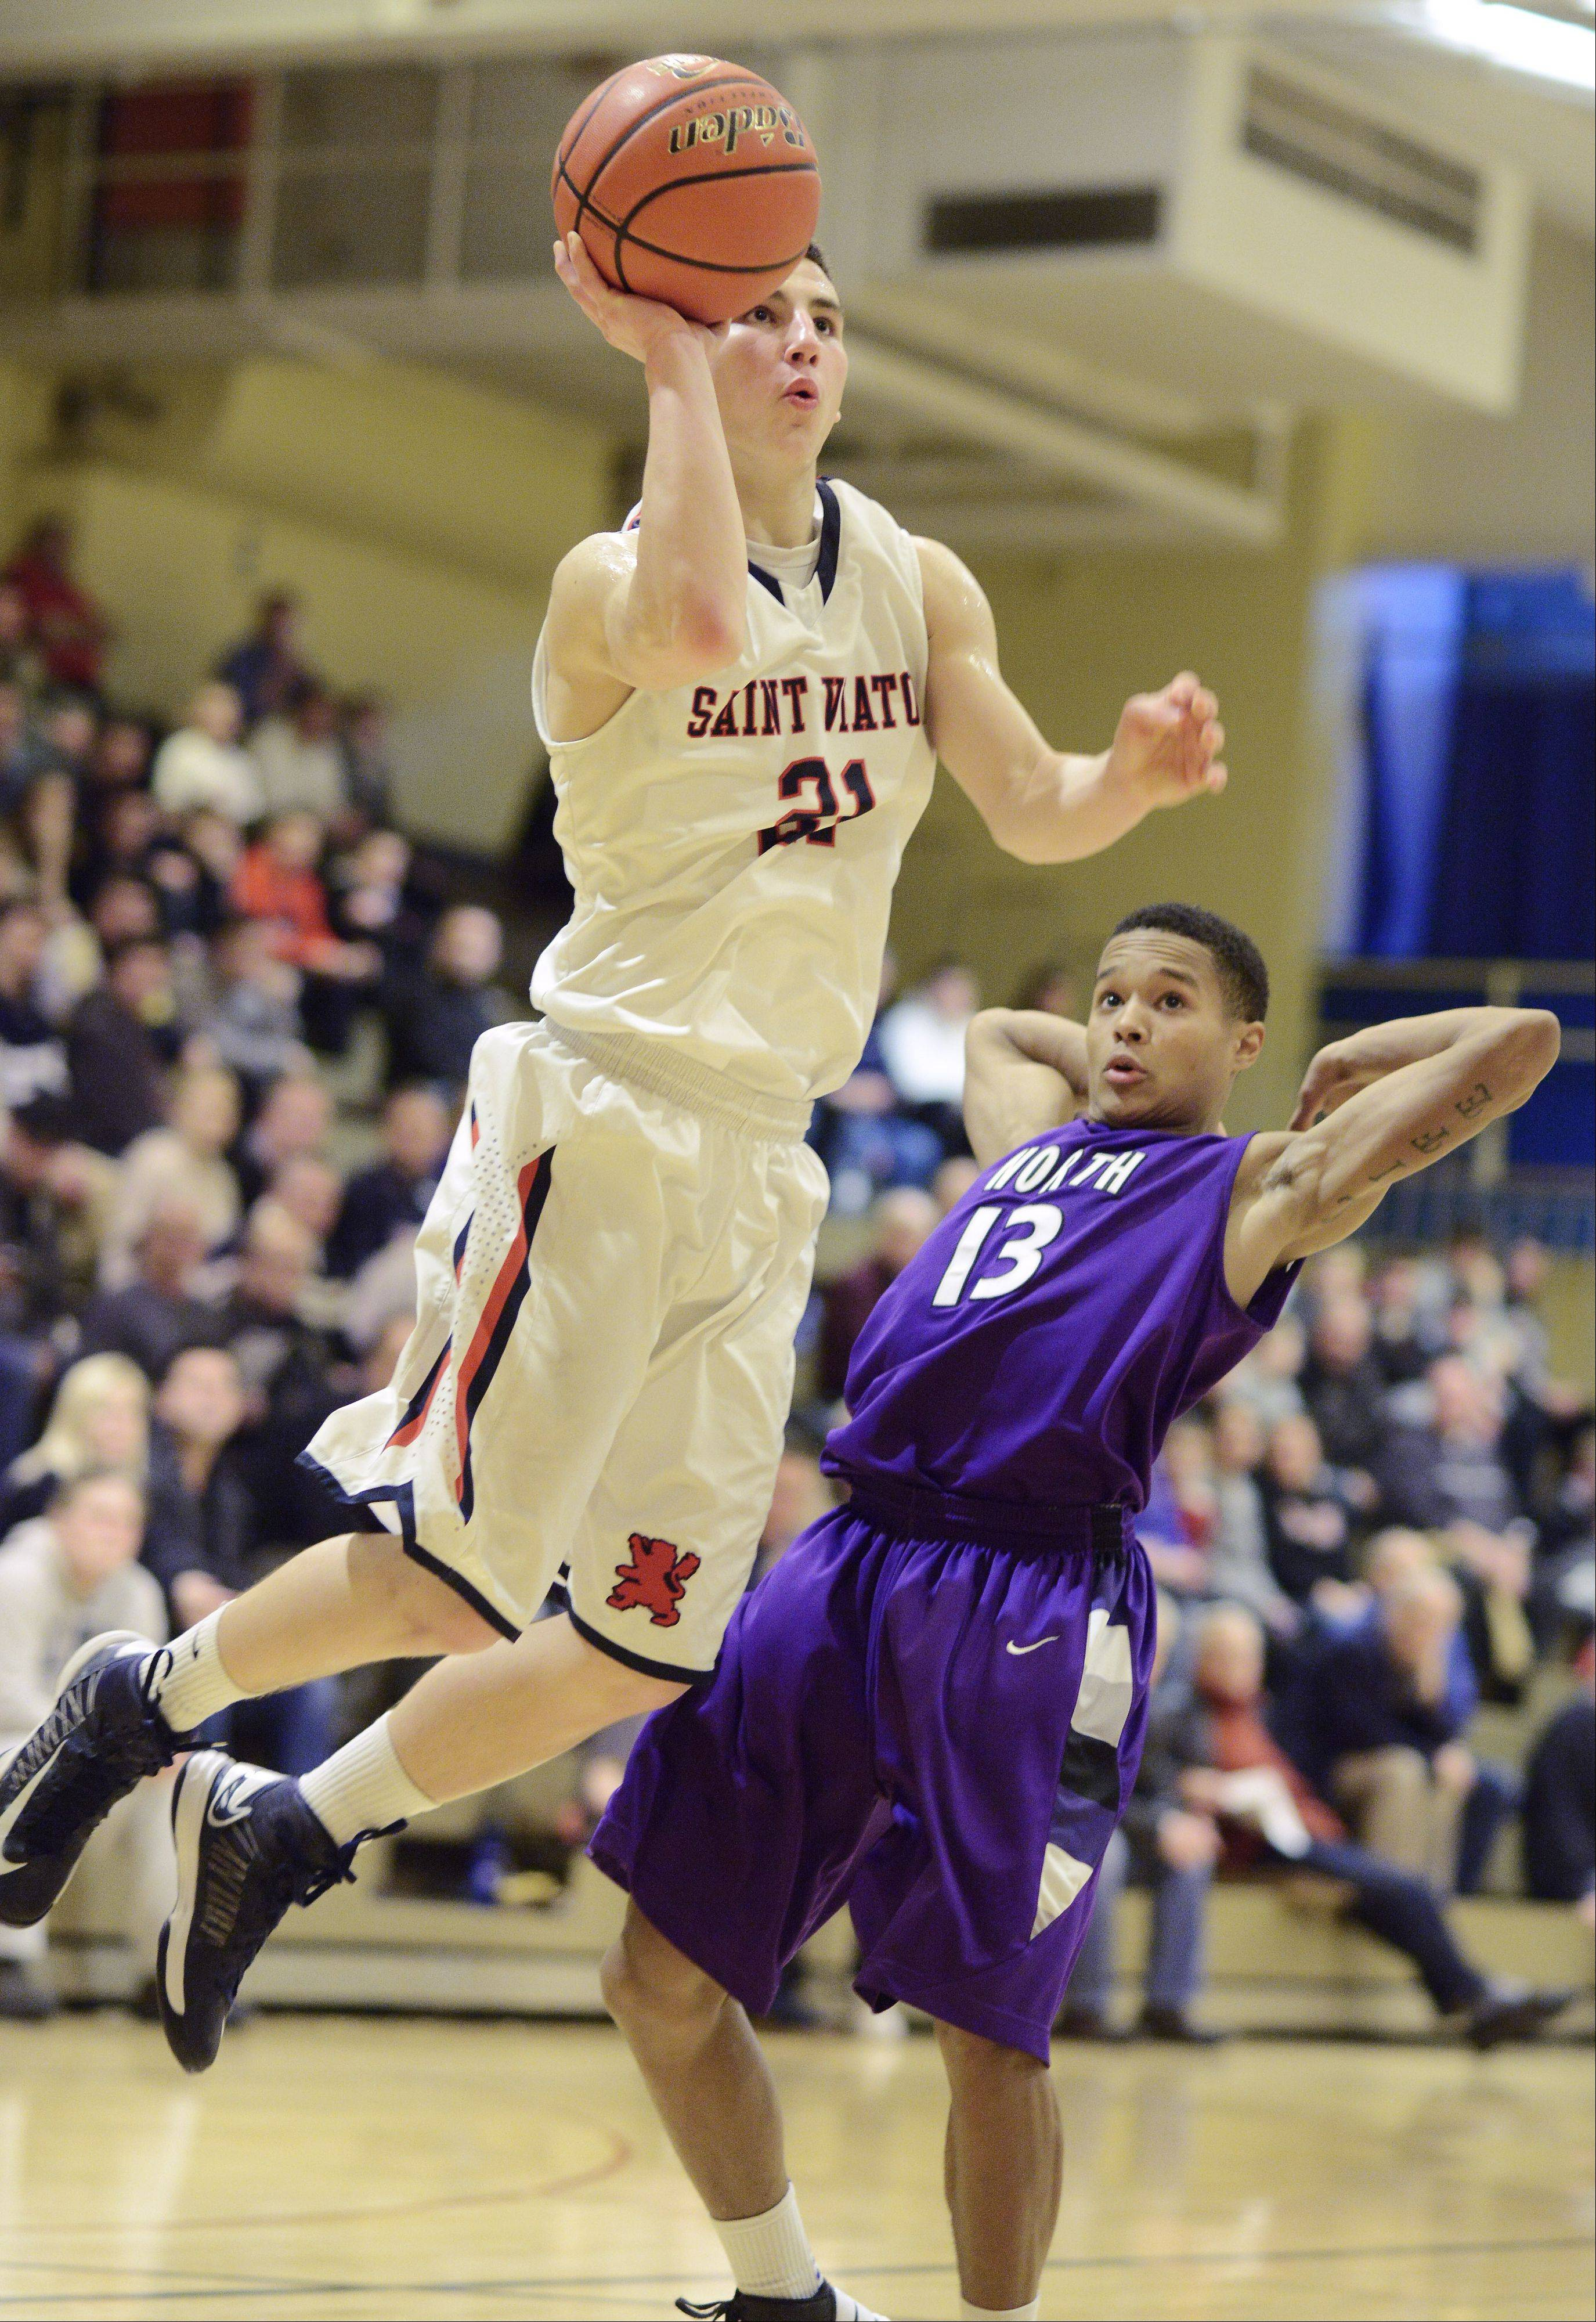 St. Viator's Mark Falotico takes a jump shot as he moves past Niles North's JJ Myles during Friday's semifinal of the Wheeling Tournament.